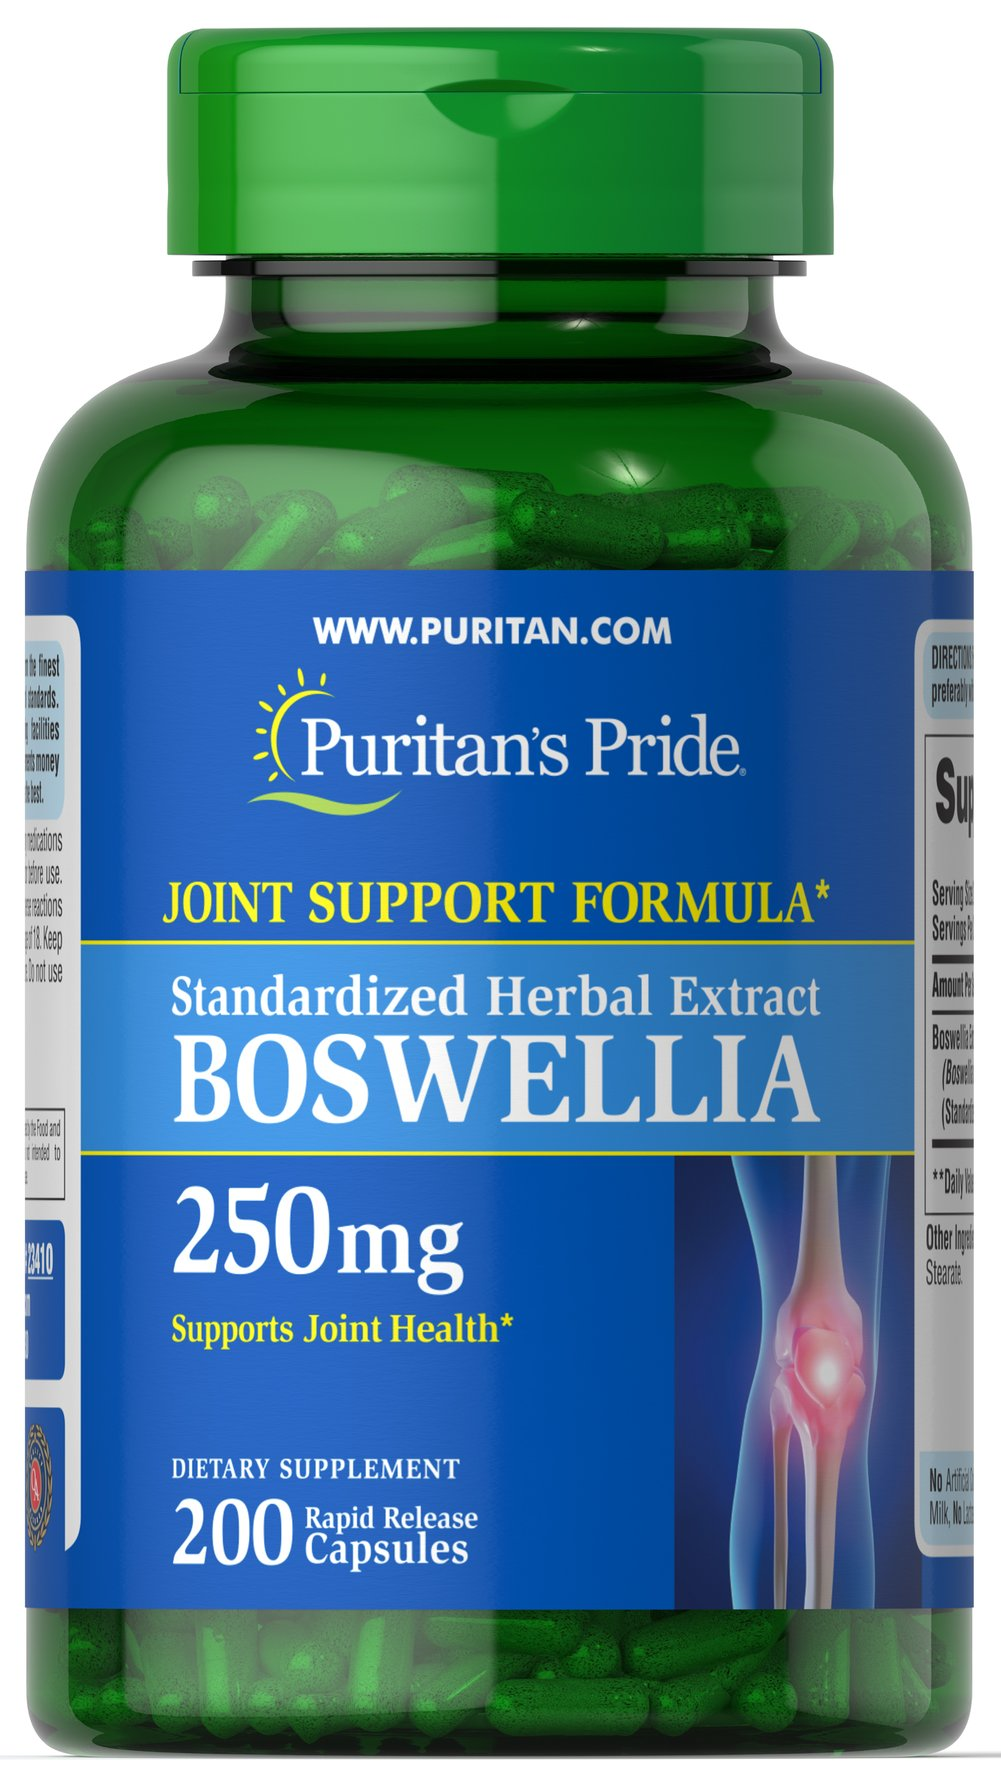 Boswellia Standardized Extract 250mg  200 Capsules 250 mg $39.99